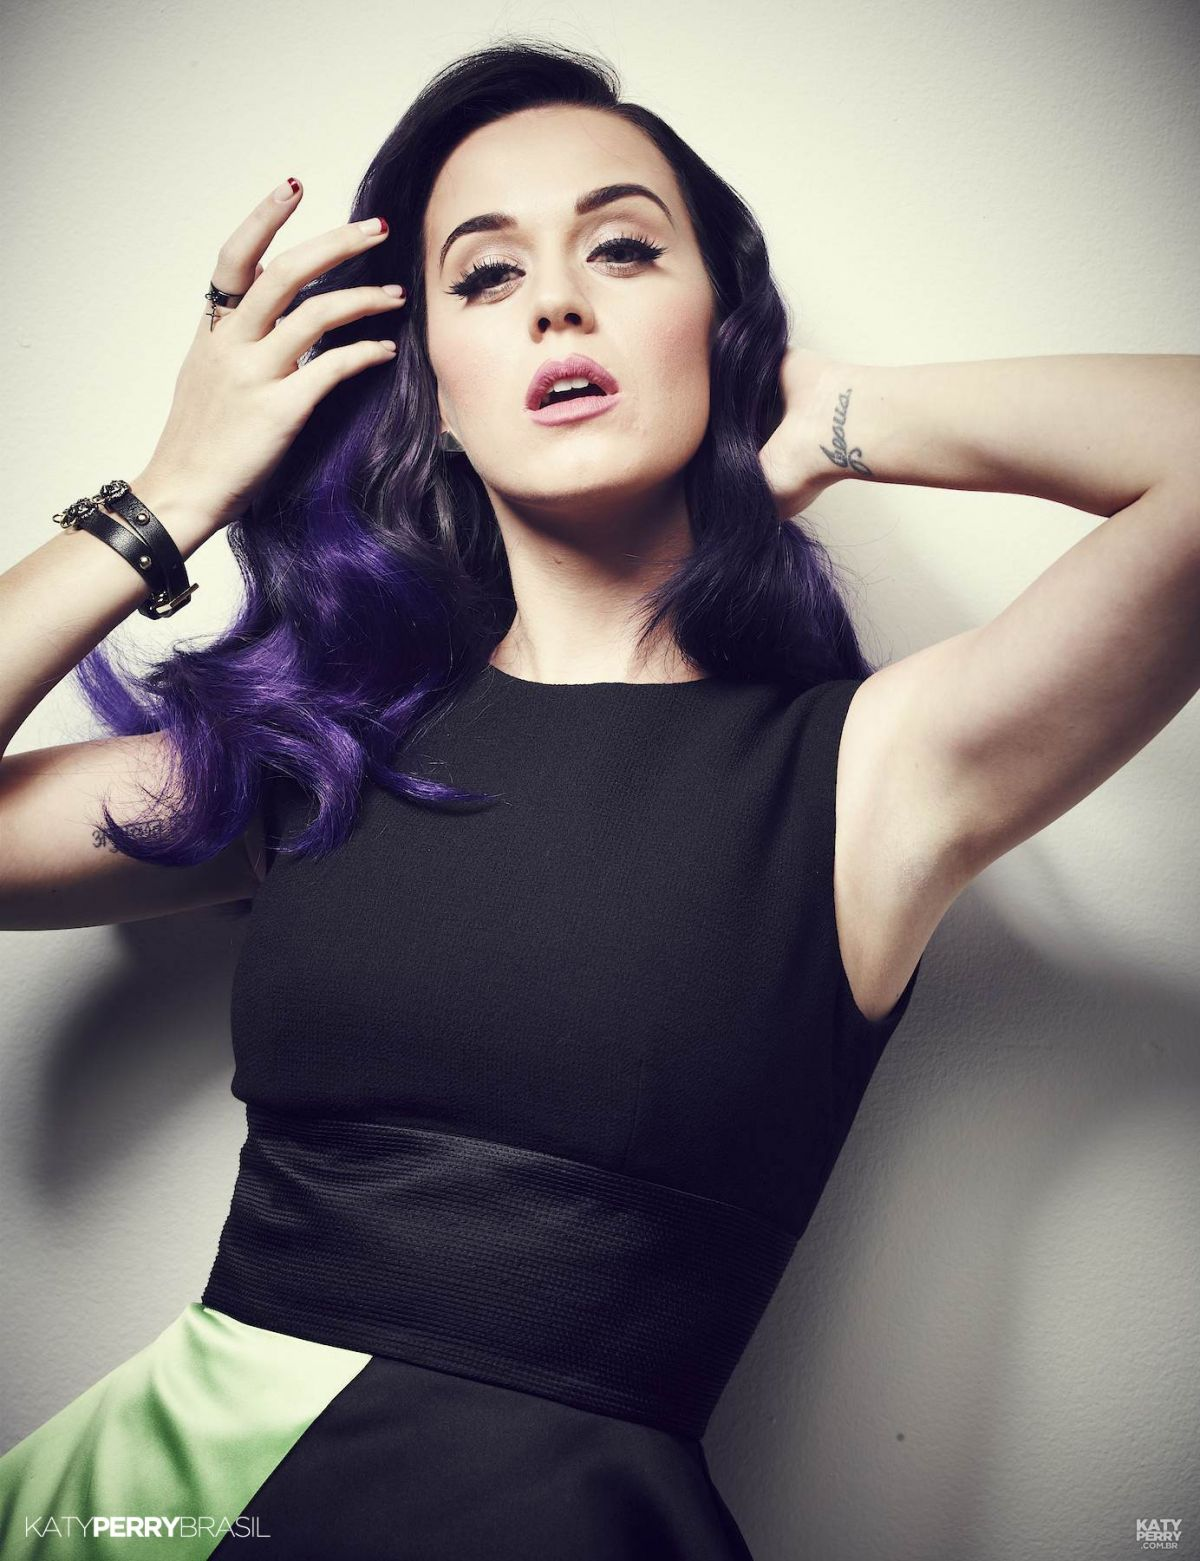 Perry gallery katy Katy Perry's